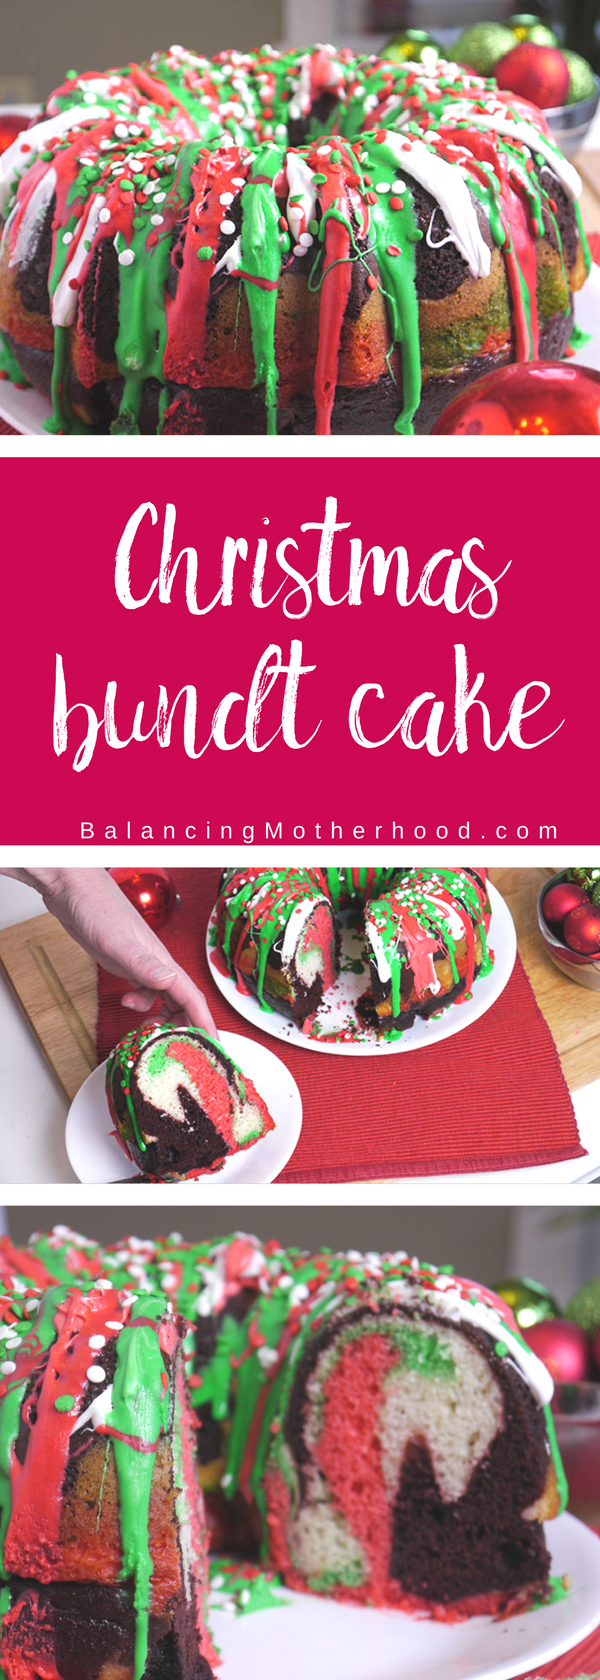 the perfect christmas cake that will wow your guests this christmas bundt cake uses boxed cake mix which makes it super quick to get this on your christmas